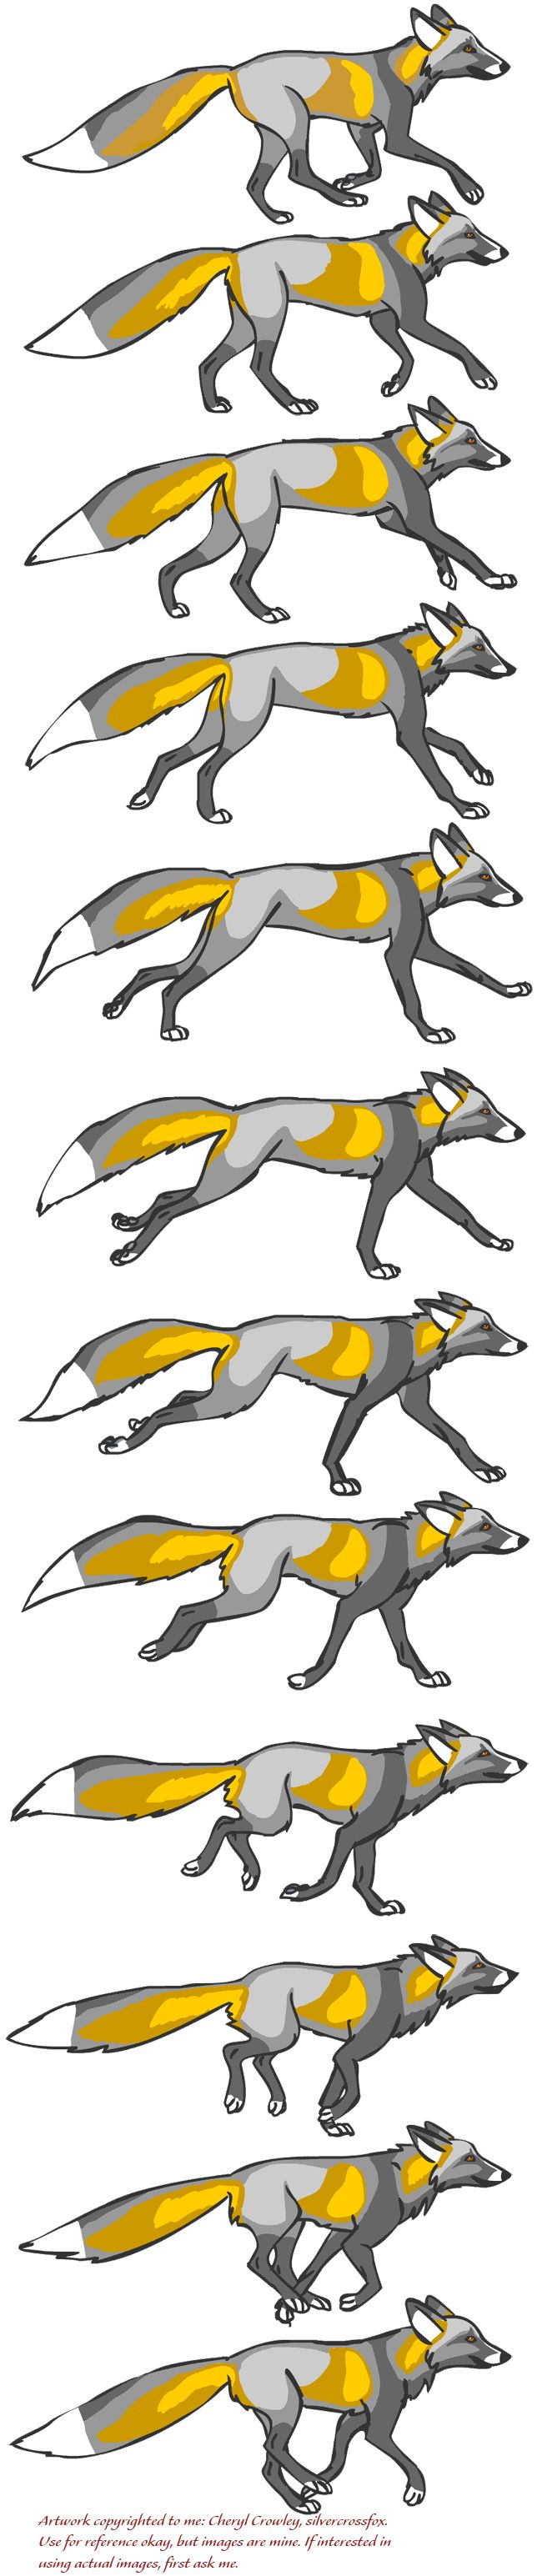 Fox Running Reference by silvercrossfox.deviantart.com on @deviantART